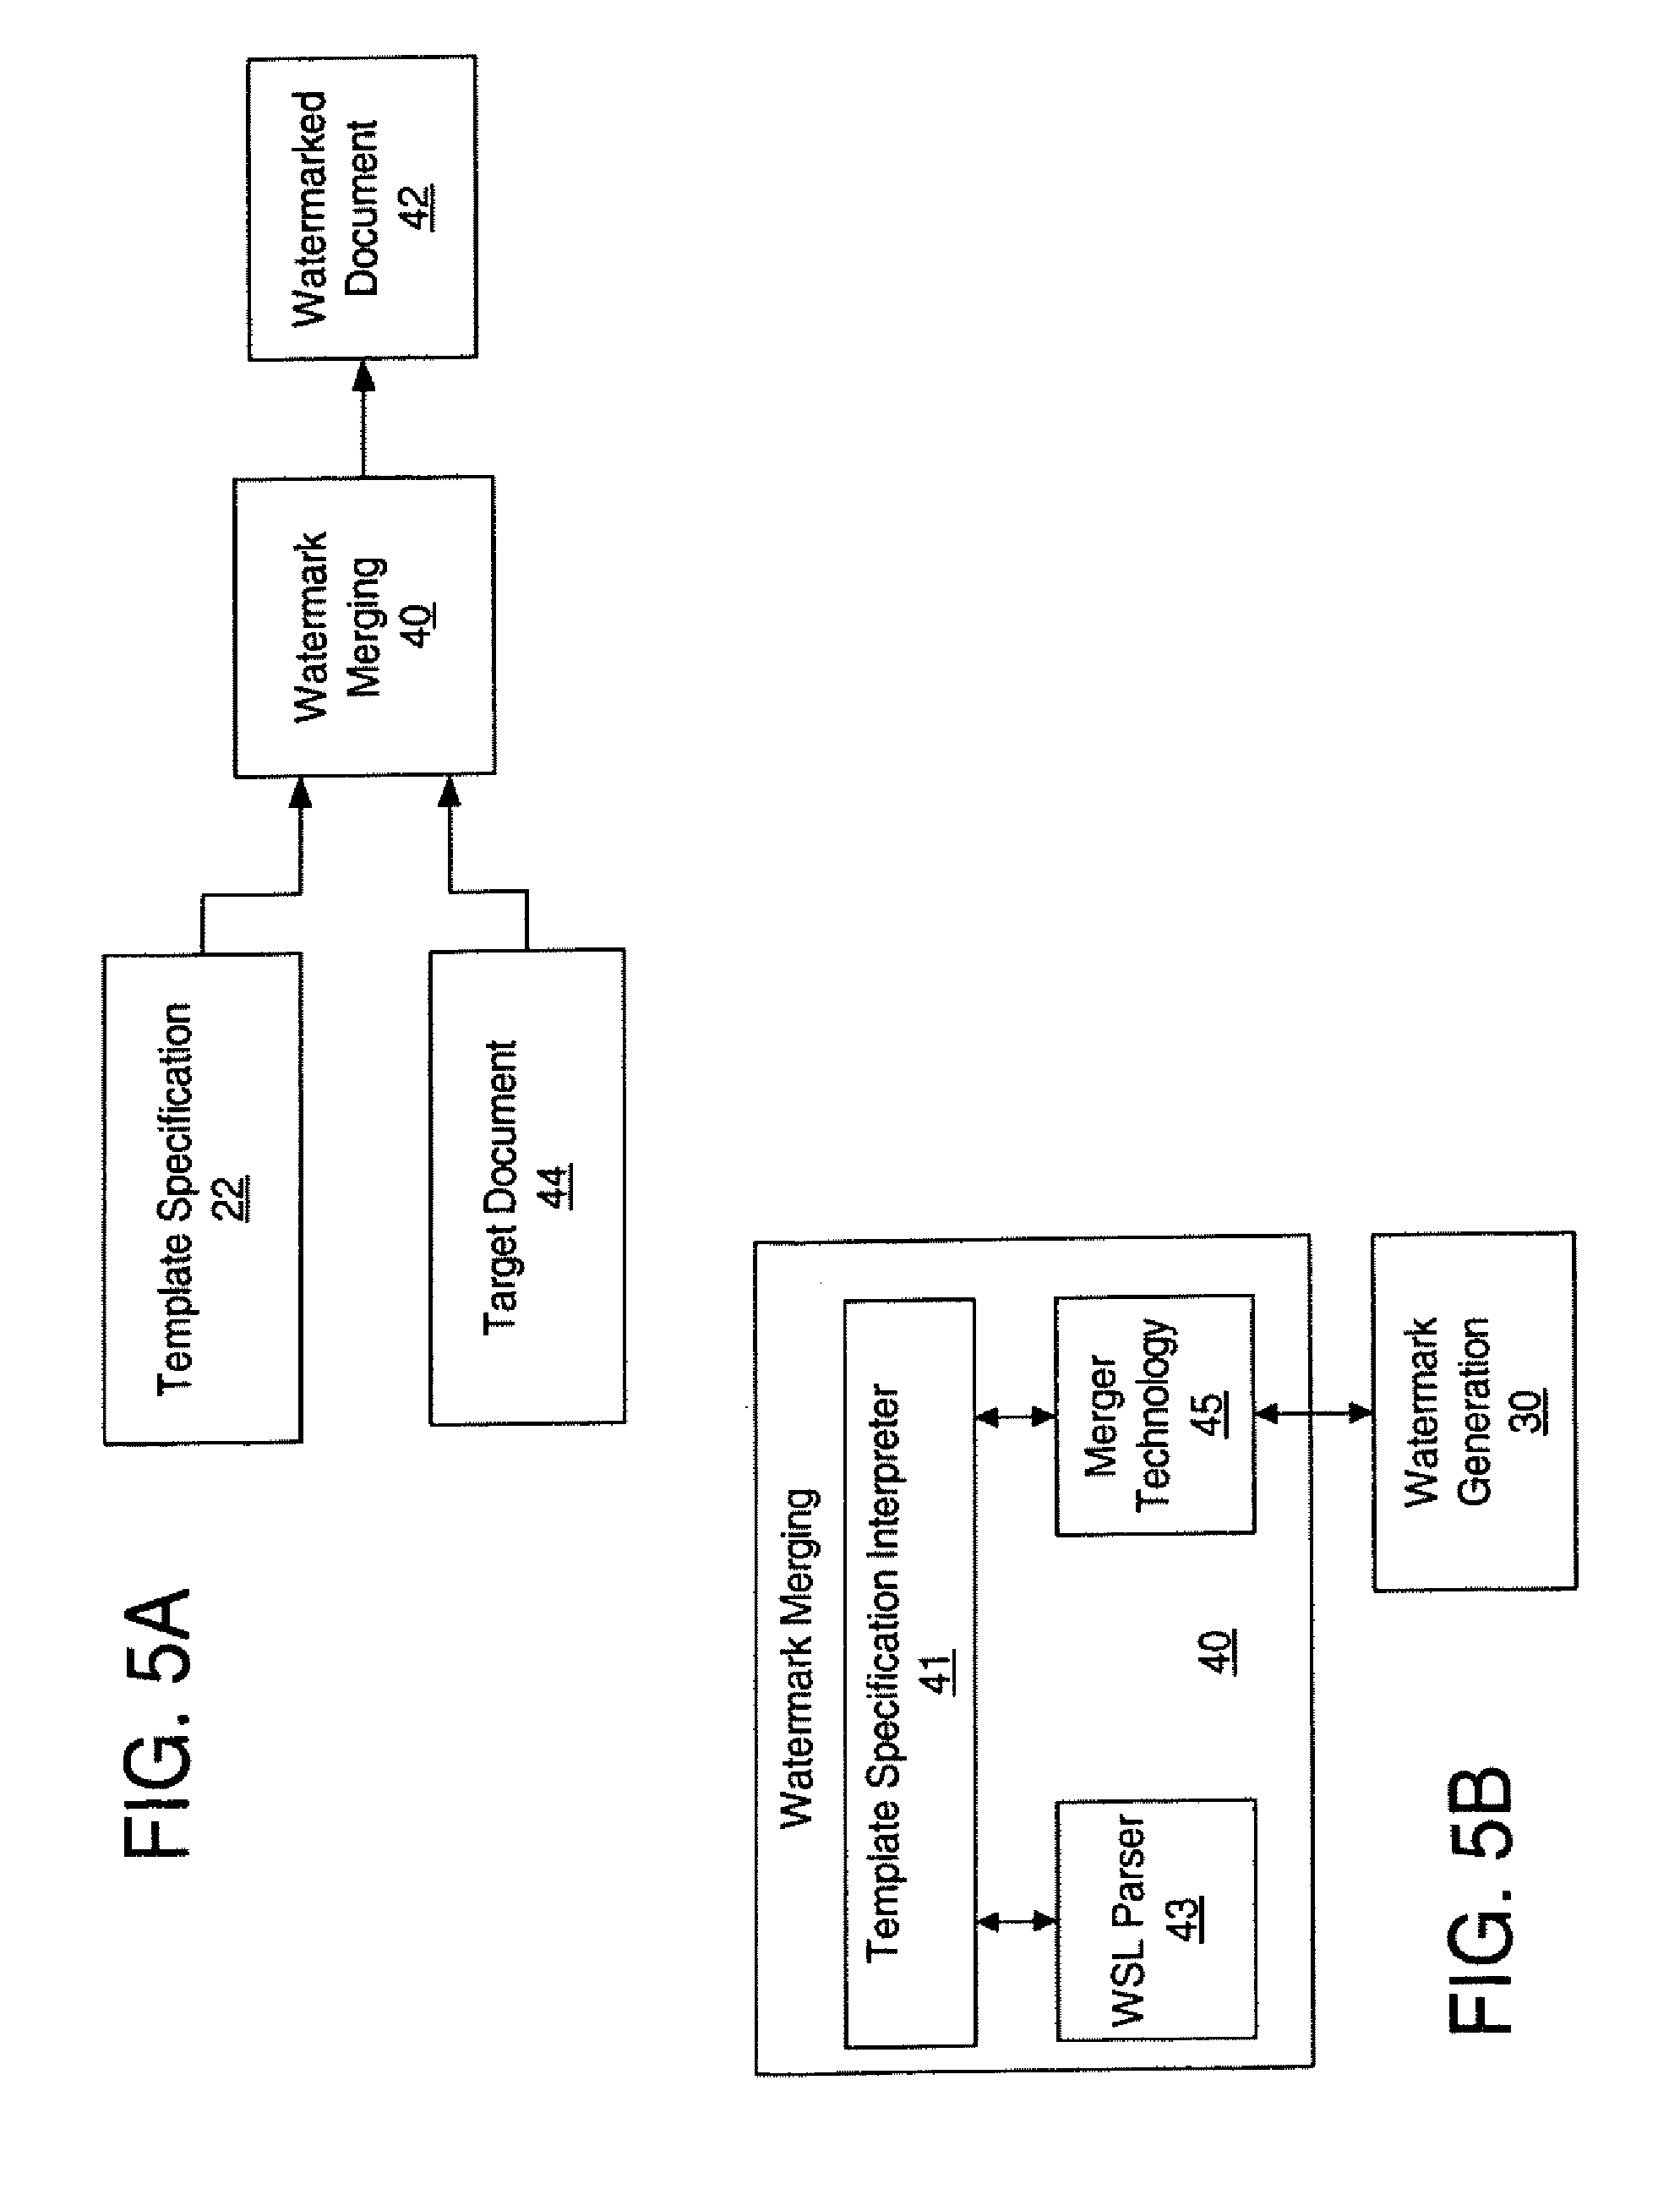 patent specification template - patent us7907749 multi stage watermarking process and